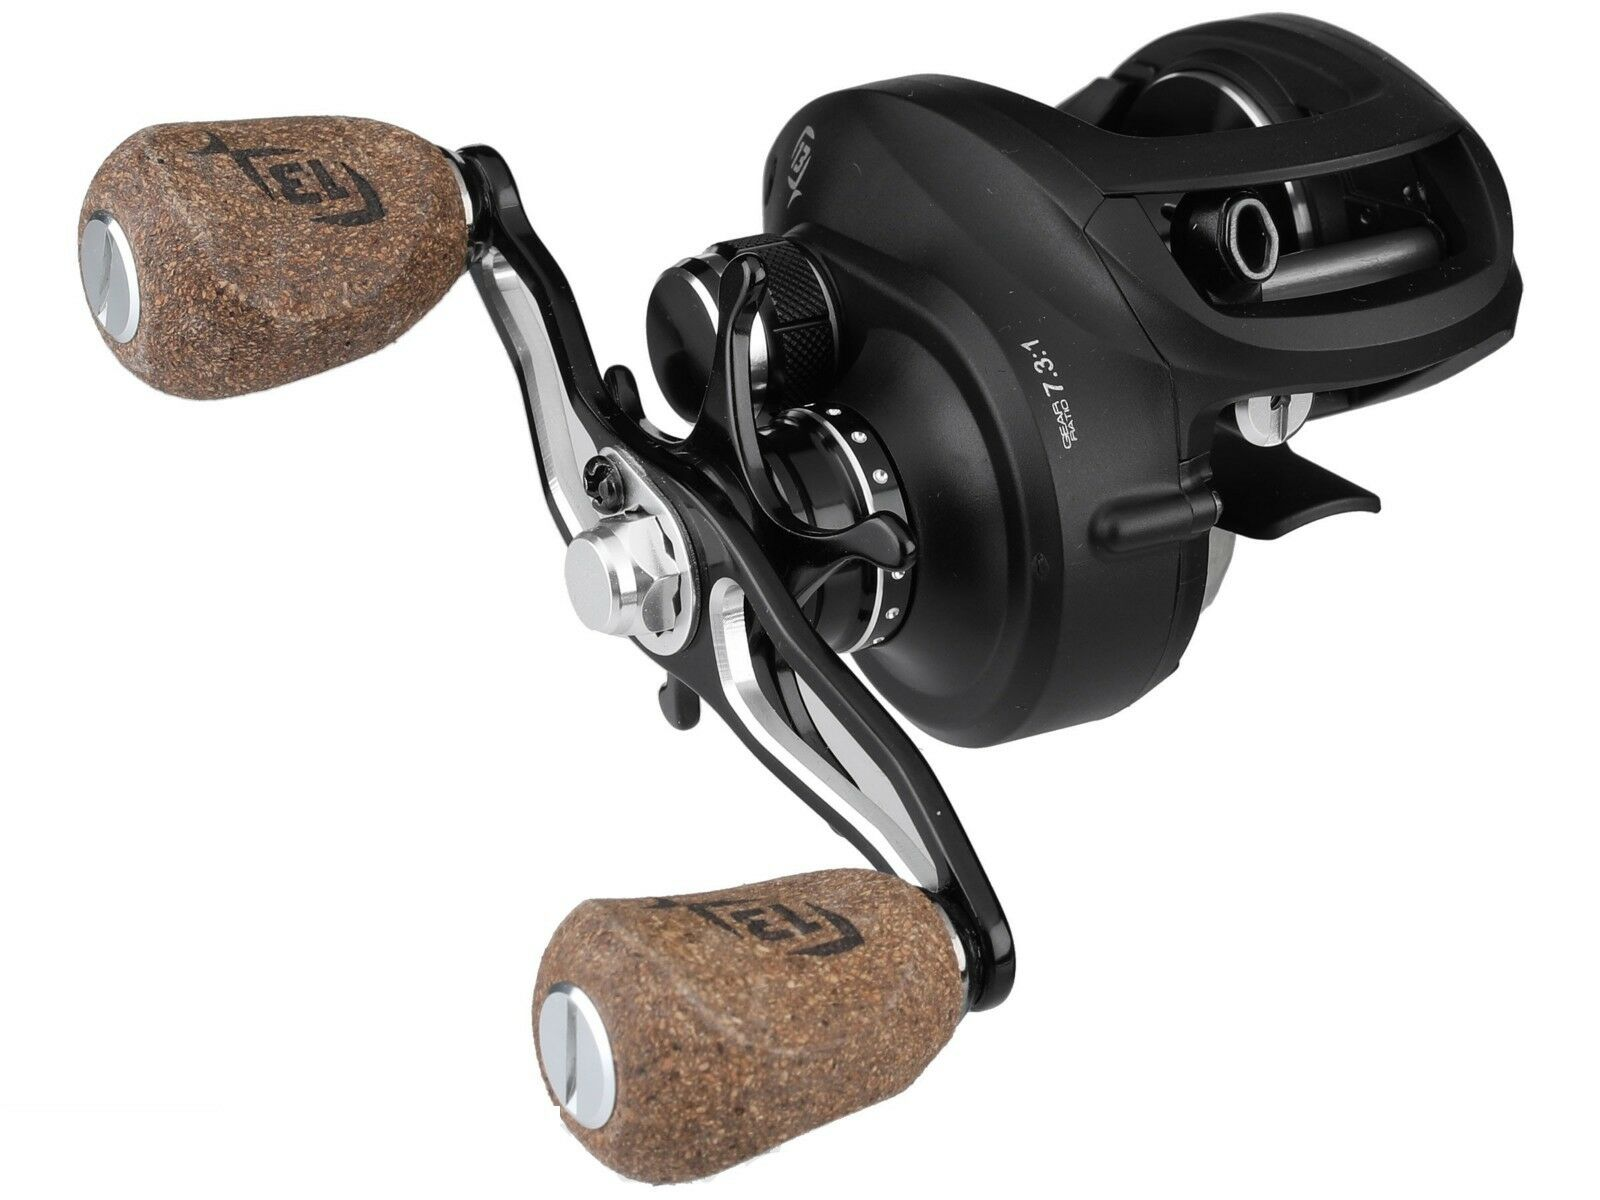 13 pesca Concept A Baitcast pesca Reel Freshwater & Saltwater Casting Reel